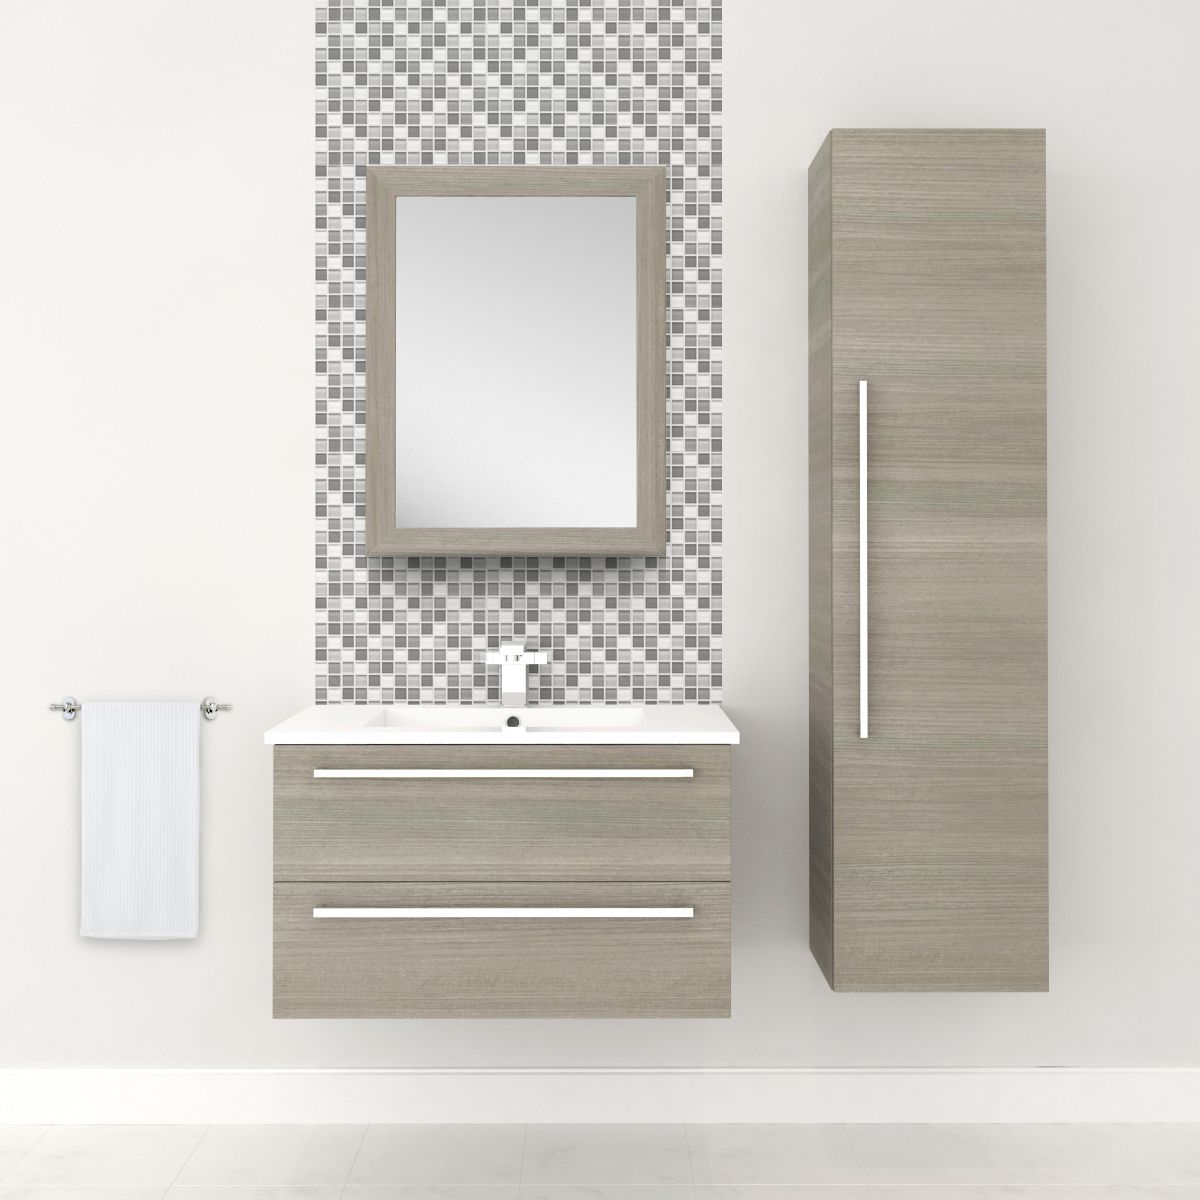 cutler kitchen & bath silhouette collection 30-in wall hung vanity